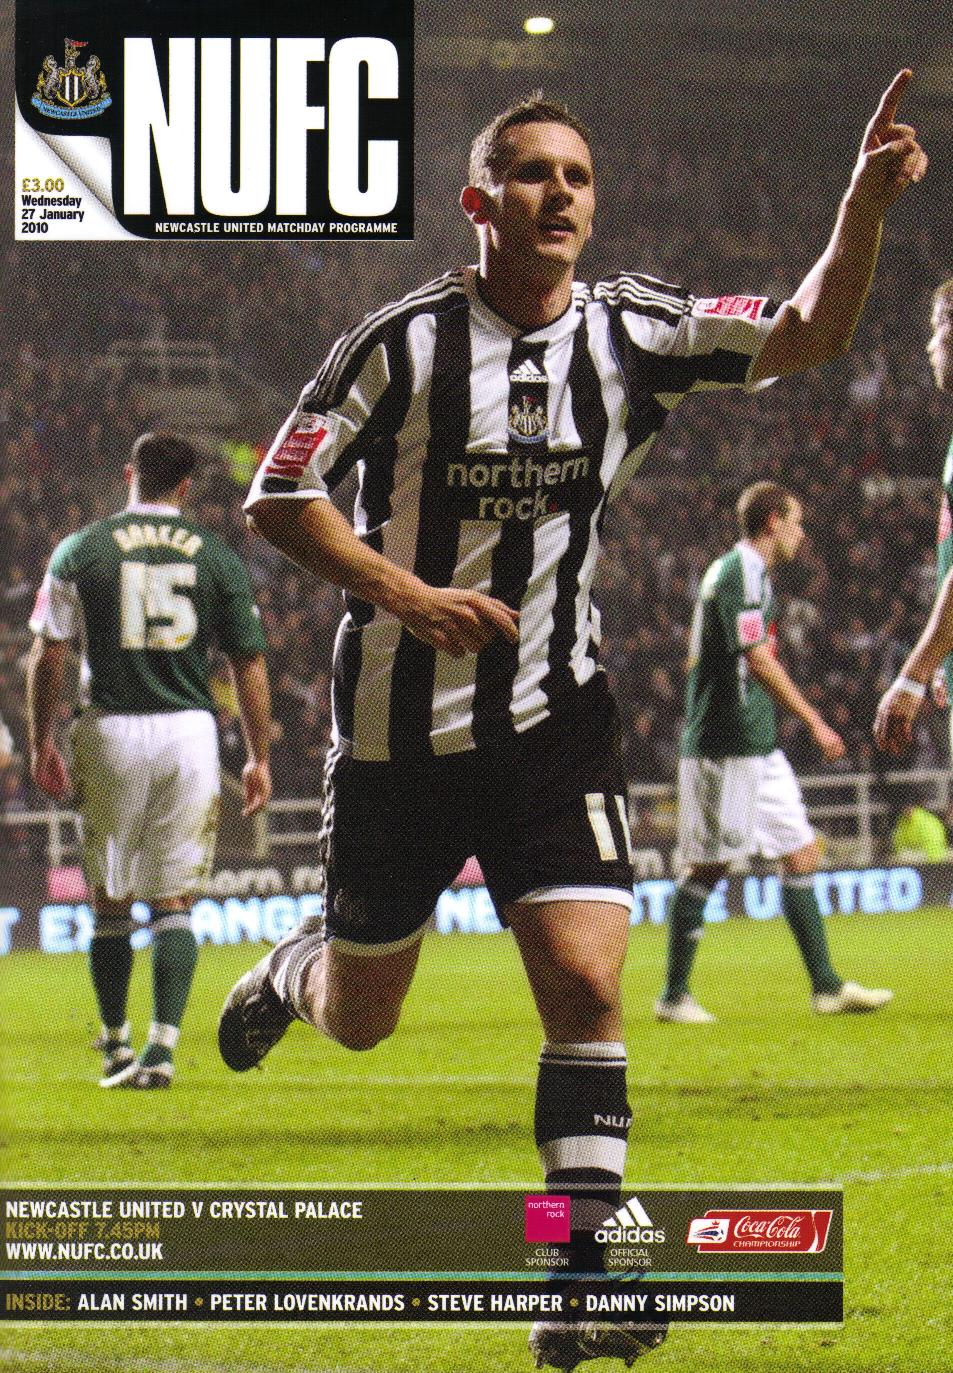 NEWCASTLE UTD v CRYSTAL PALACE 2009/10